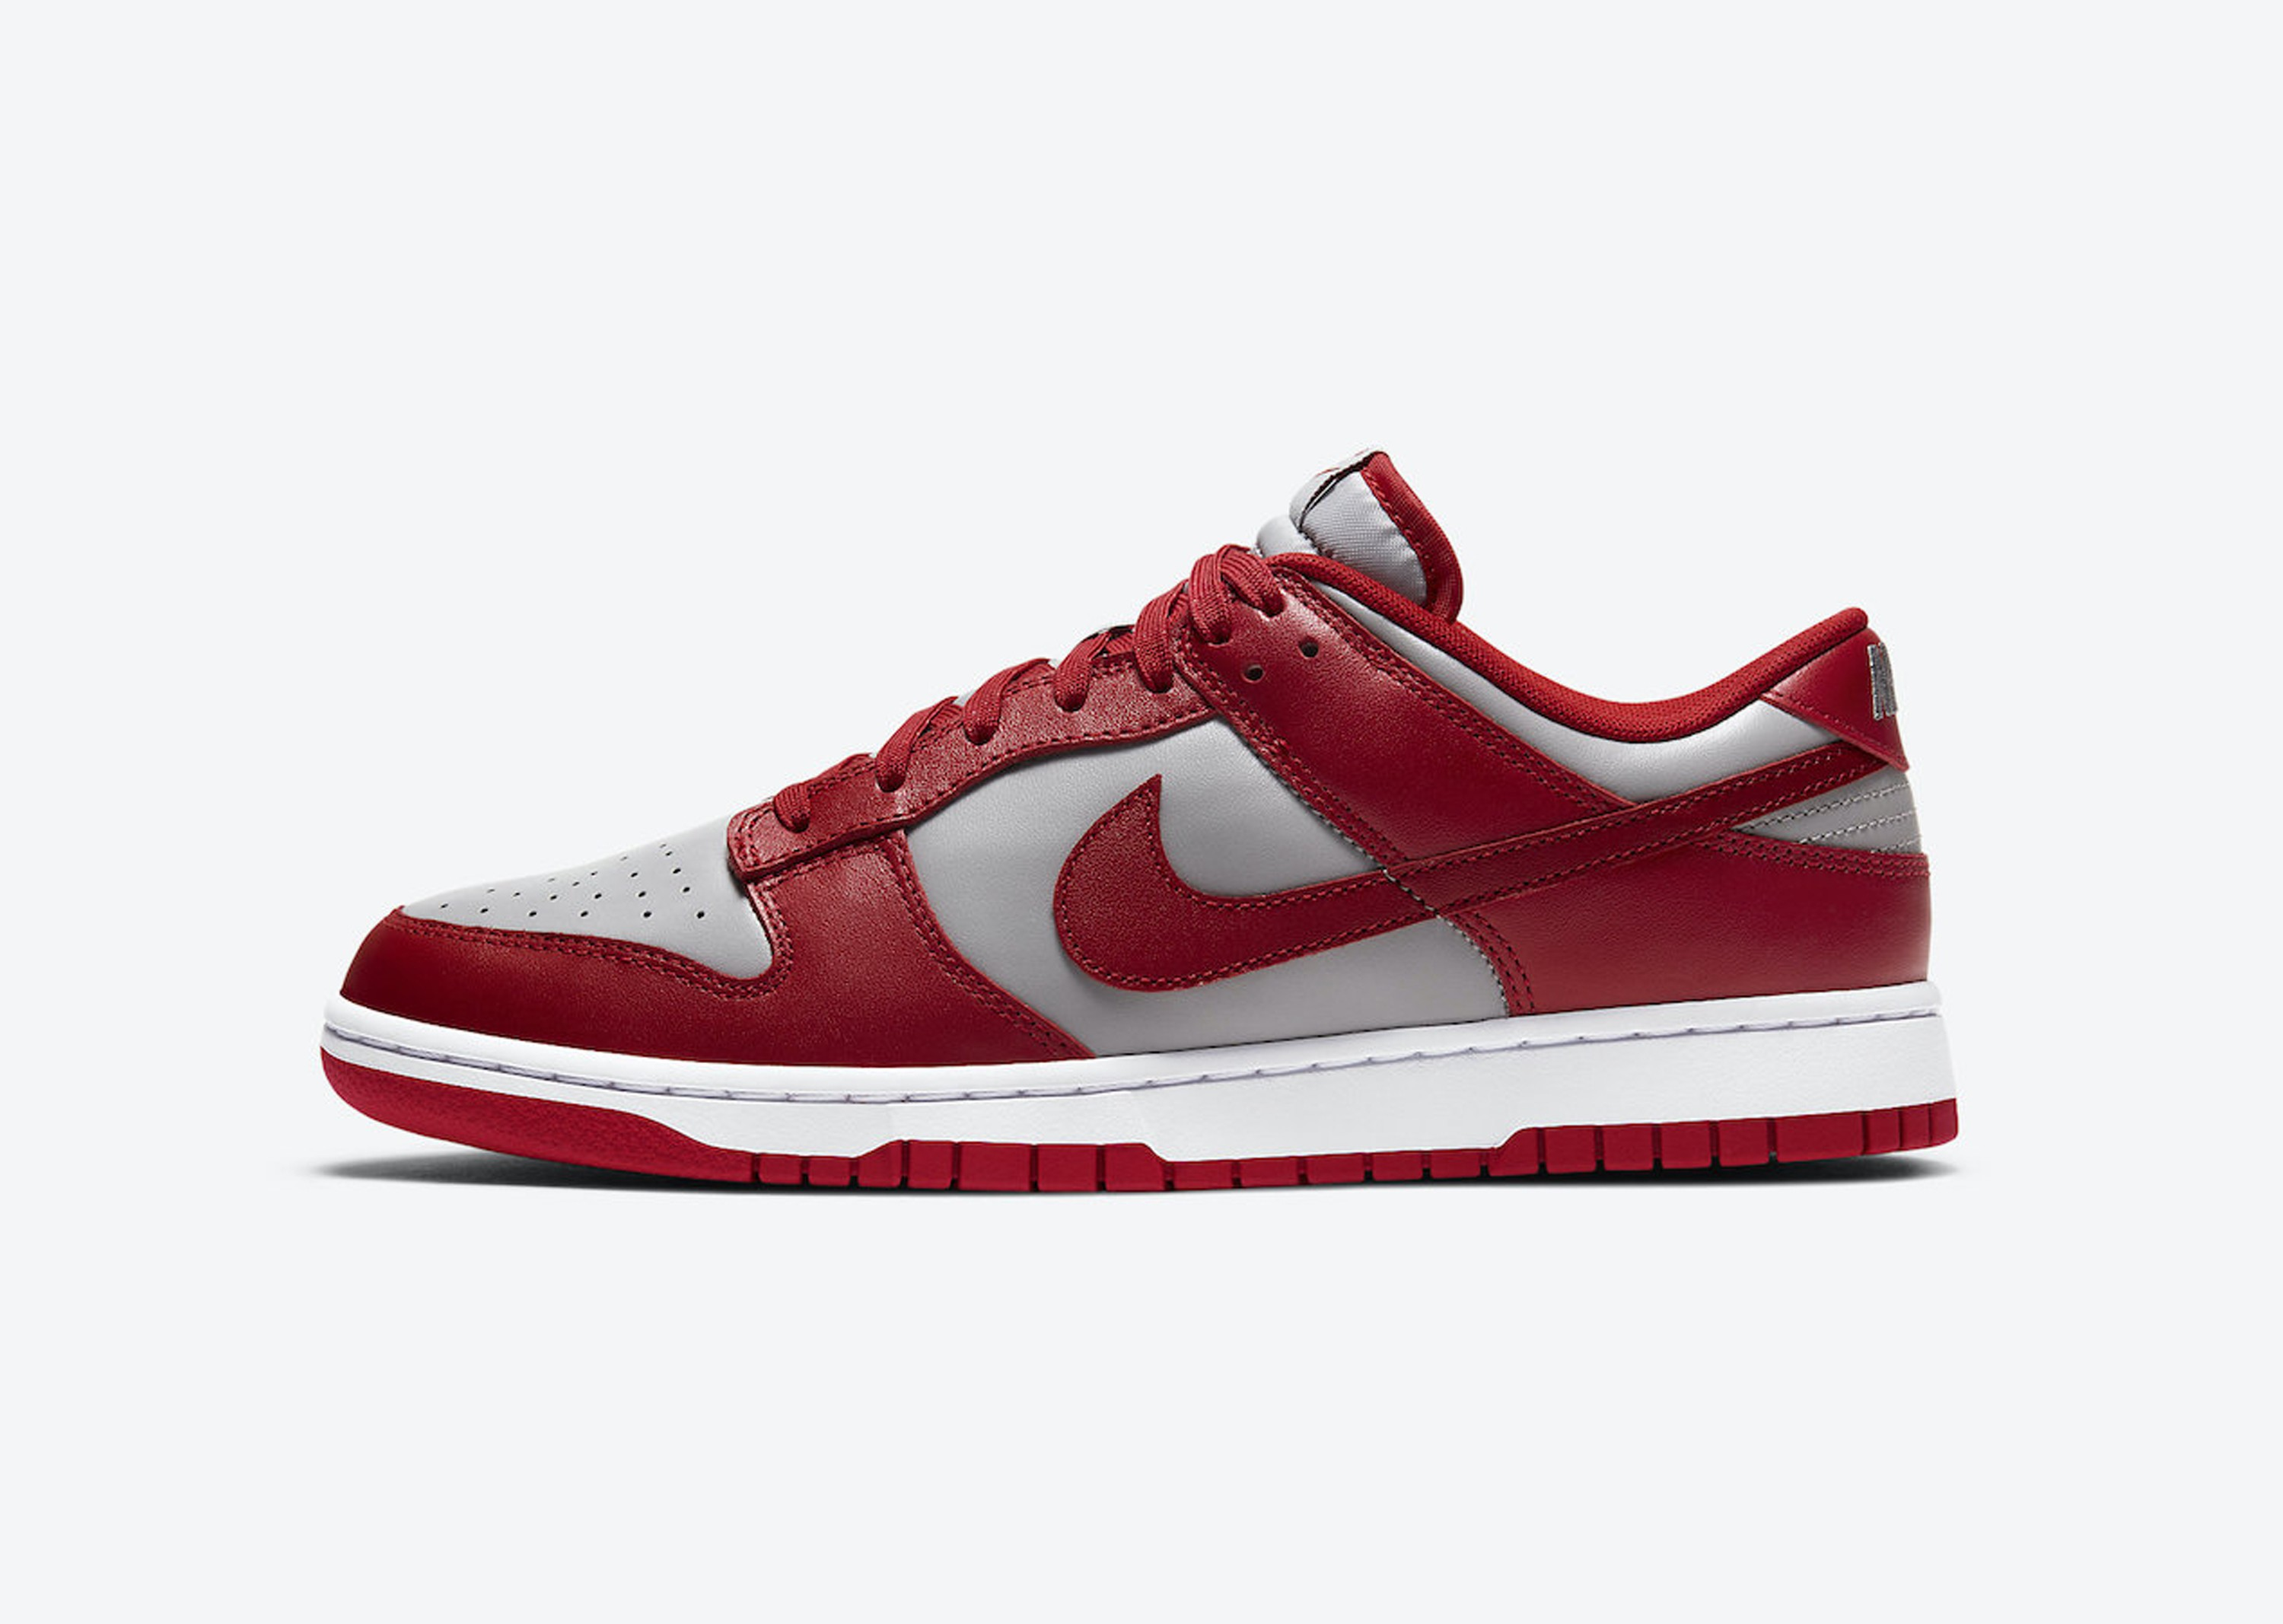 Nike_Dunk_Low_UNLV_Blog__0002_Layer 2